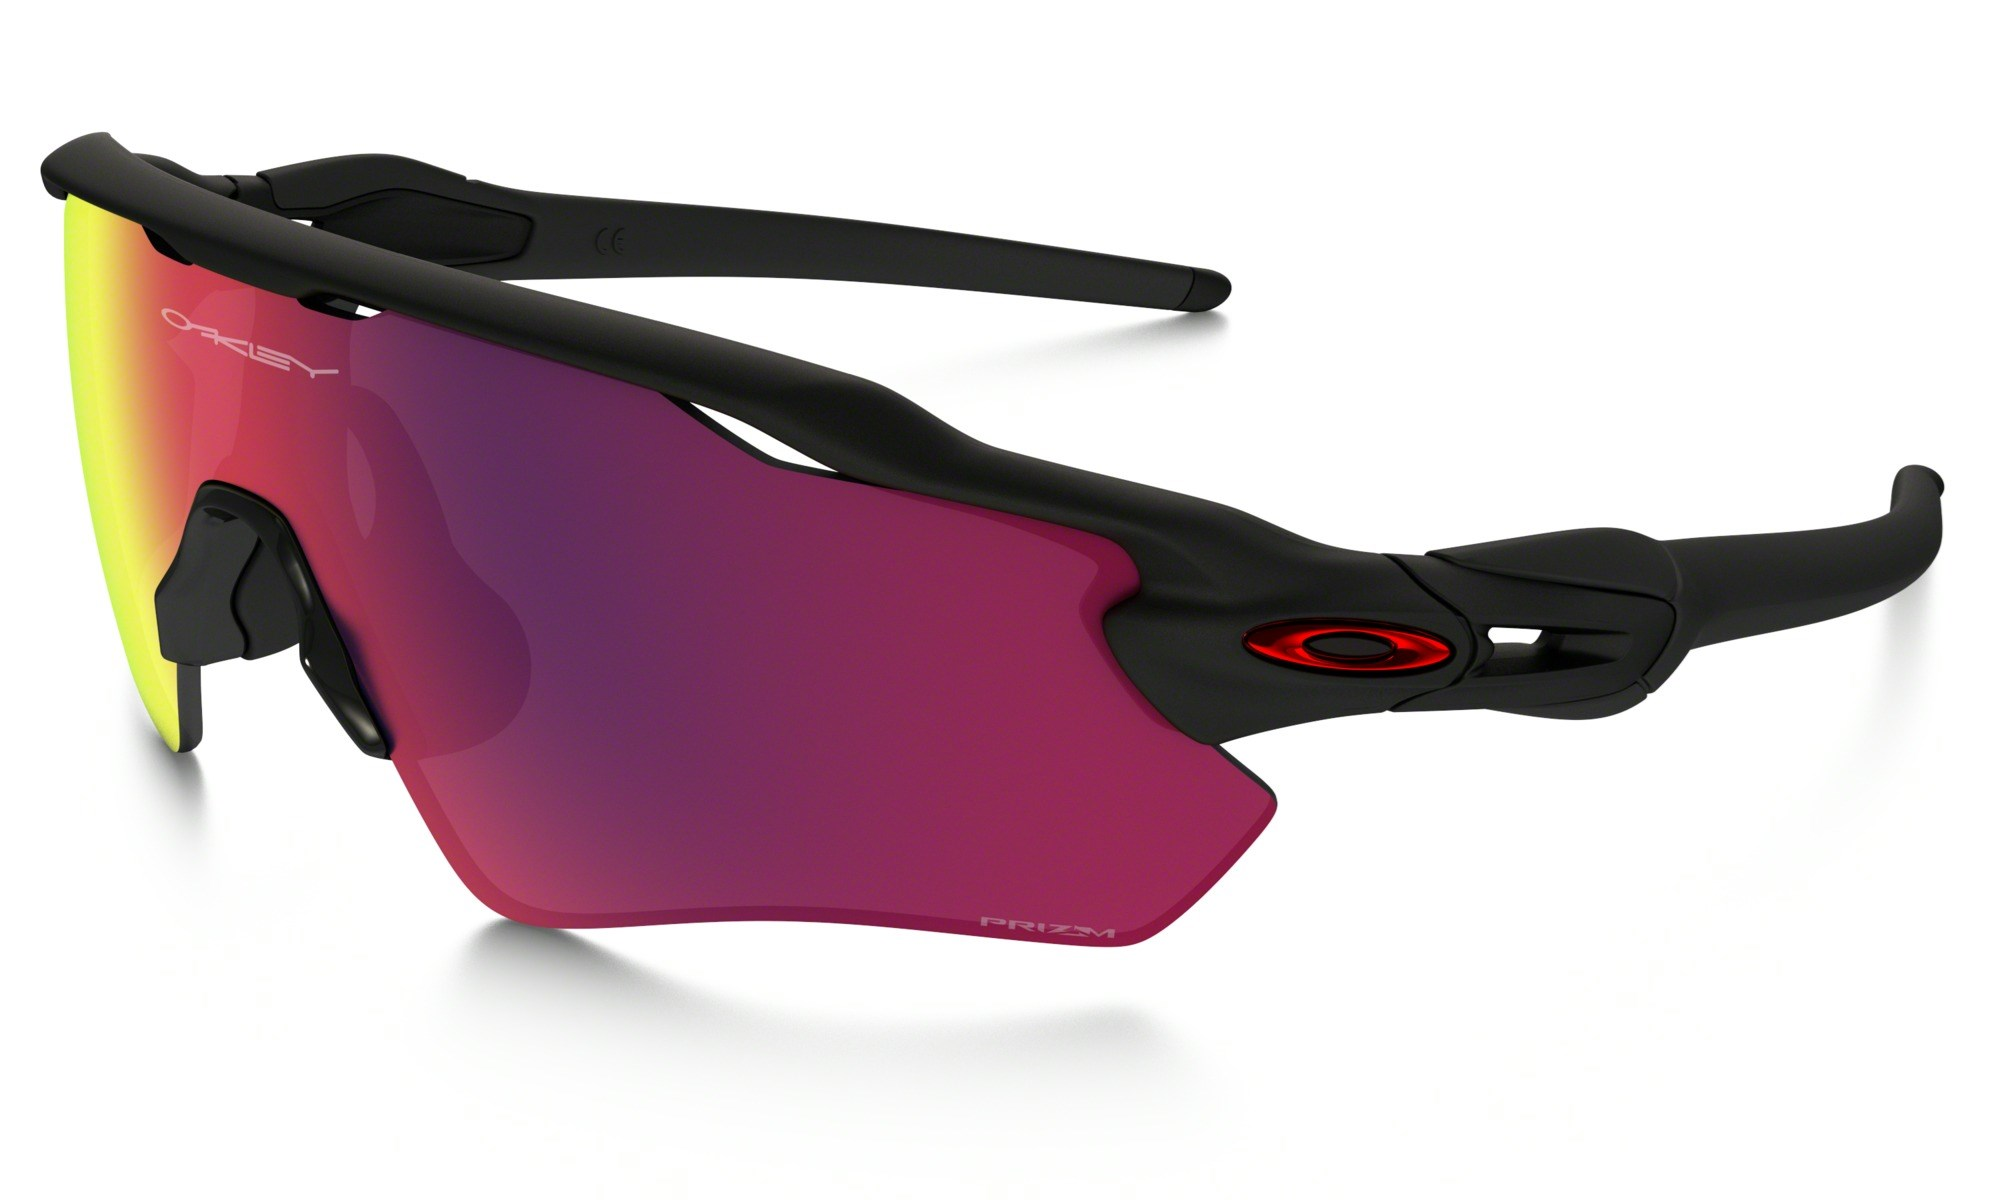 3b3d28b63826e Oakley Radar EV Path Matte Black Prizm Road. 0 (Be the first to add a  review!)